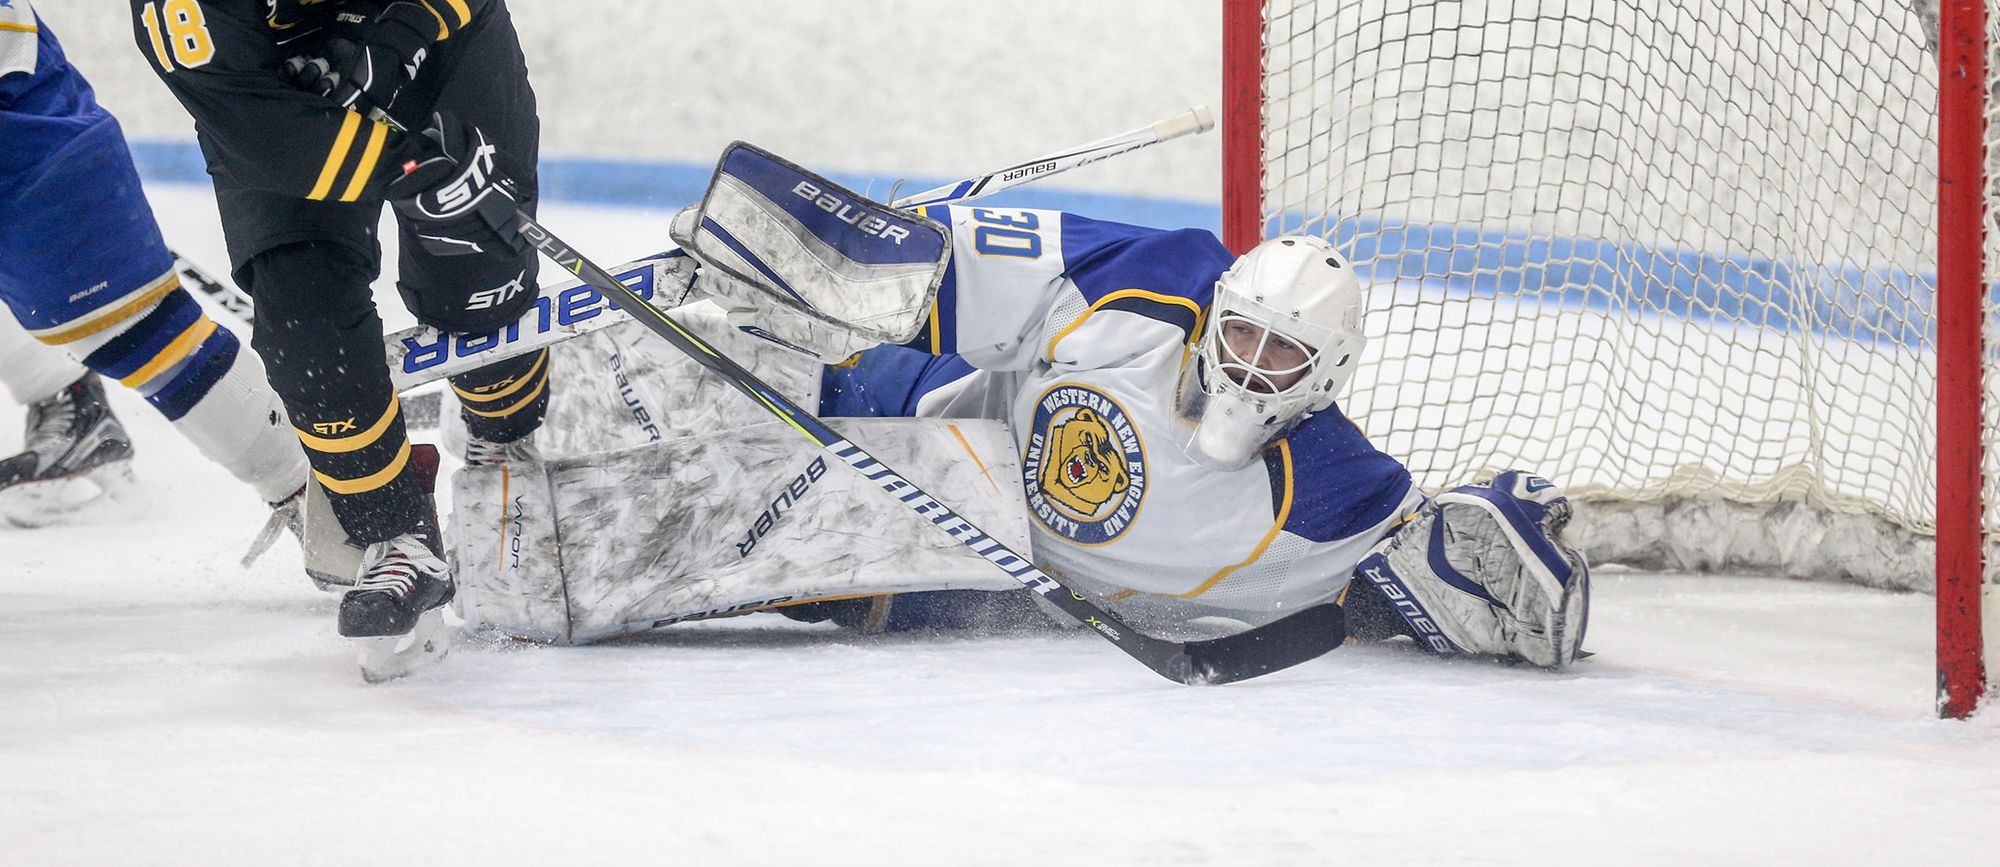 Baylee Johns made 22 saves in Western New England's 4-0 loss to Nichols on Saturday. (Photo by Chris Marion)